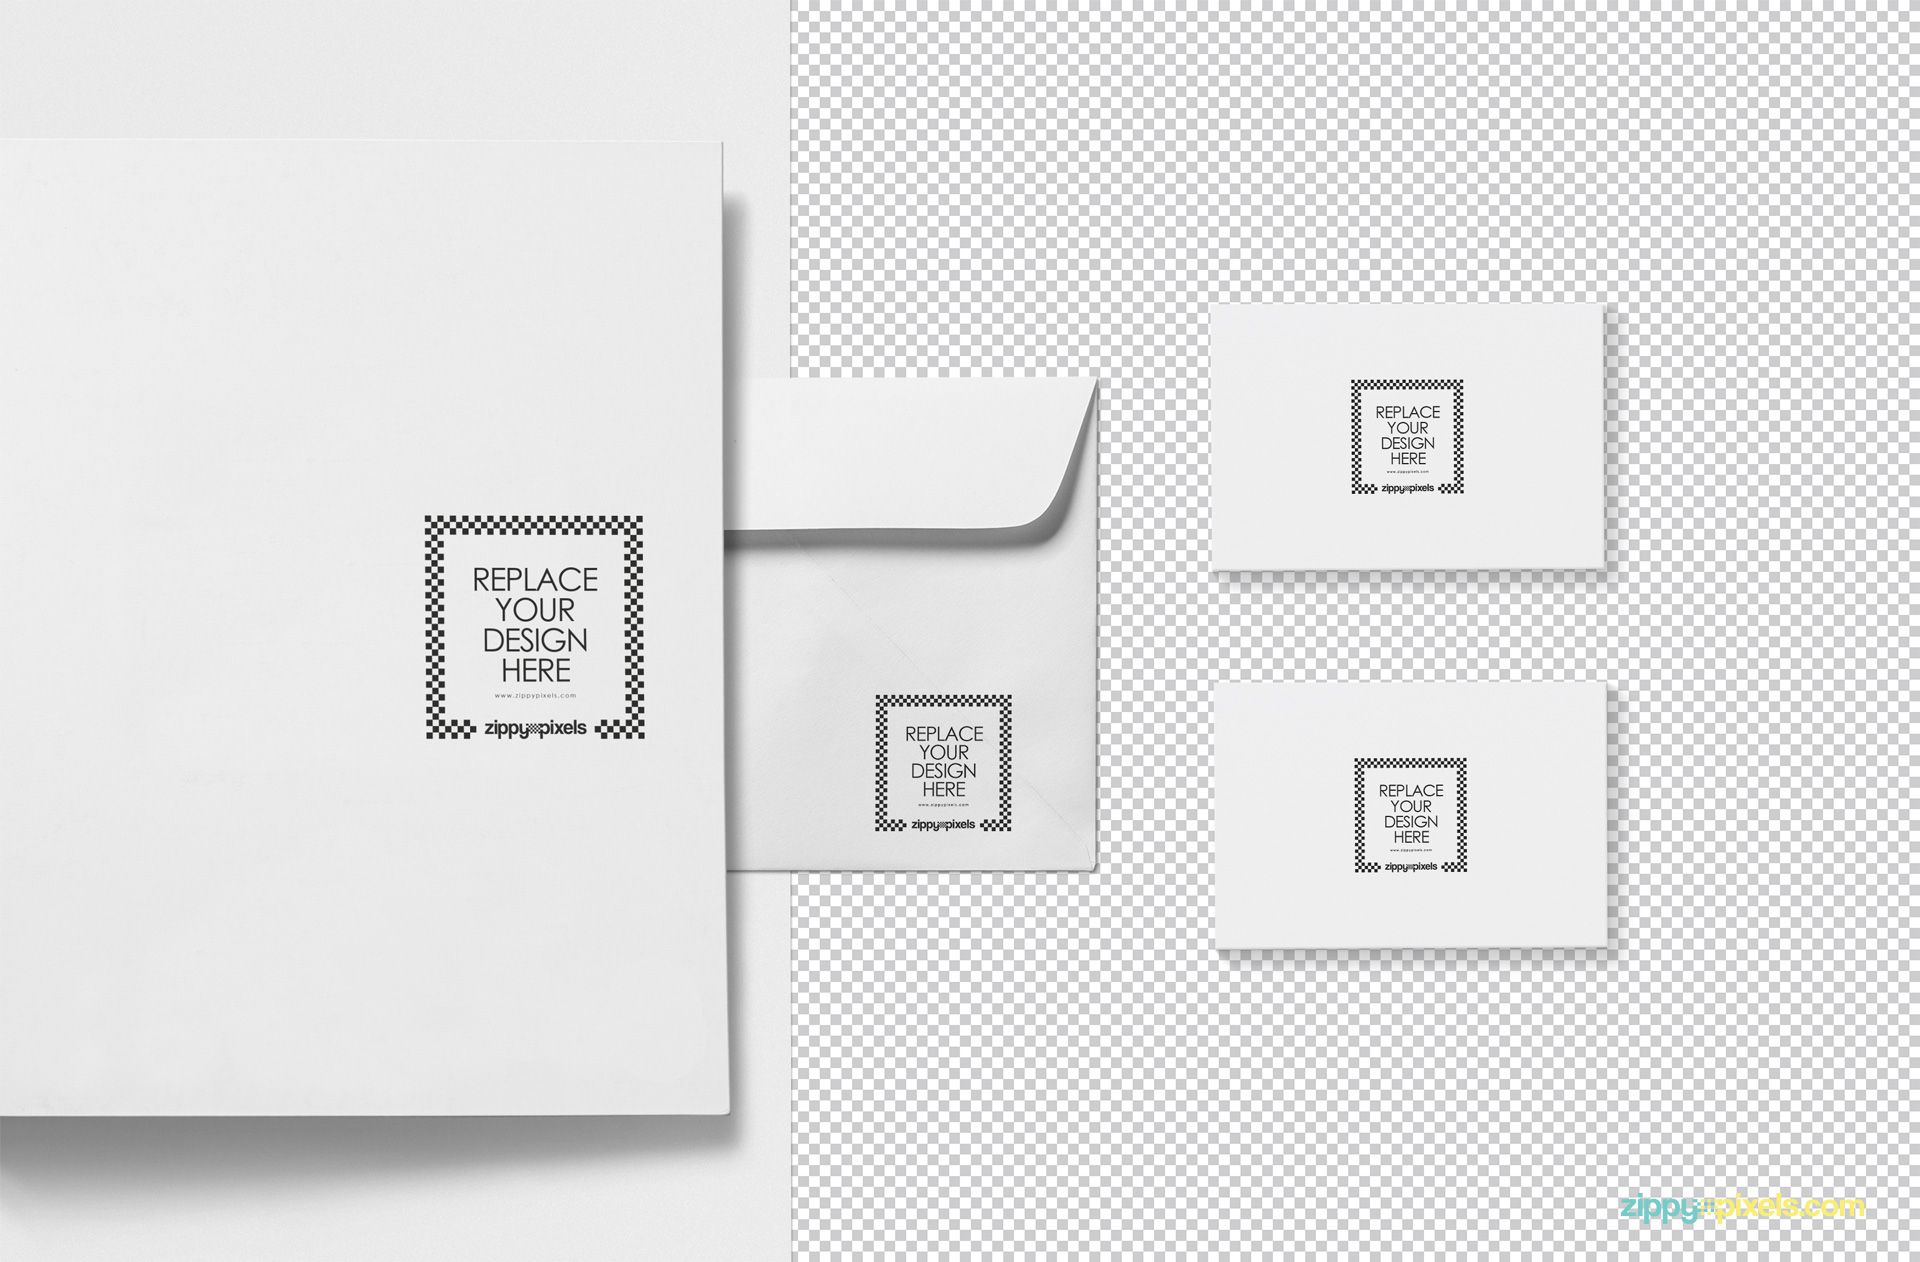 Plain editable stationery mockup PSD.